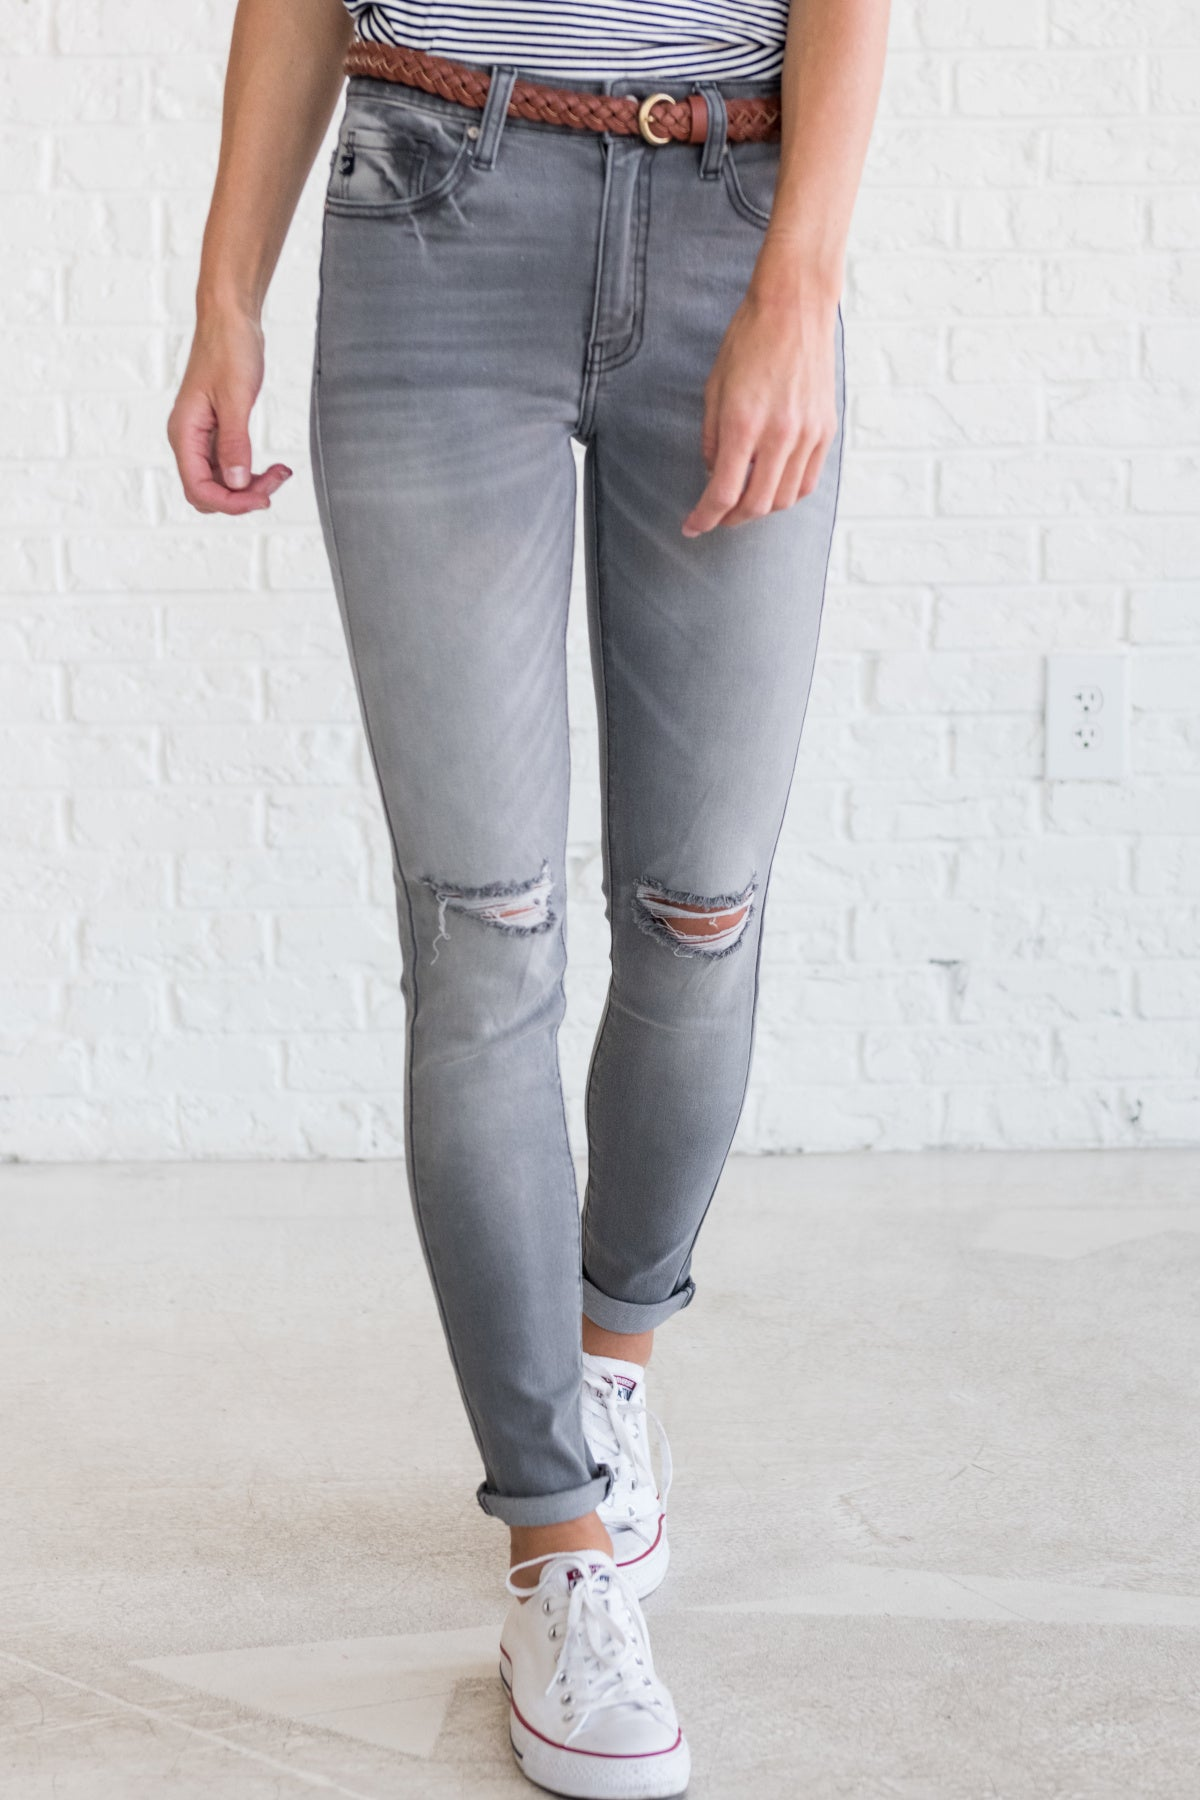 Gray Boutique Jeans